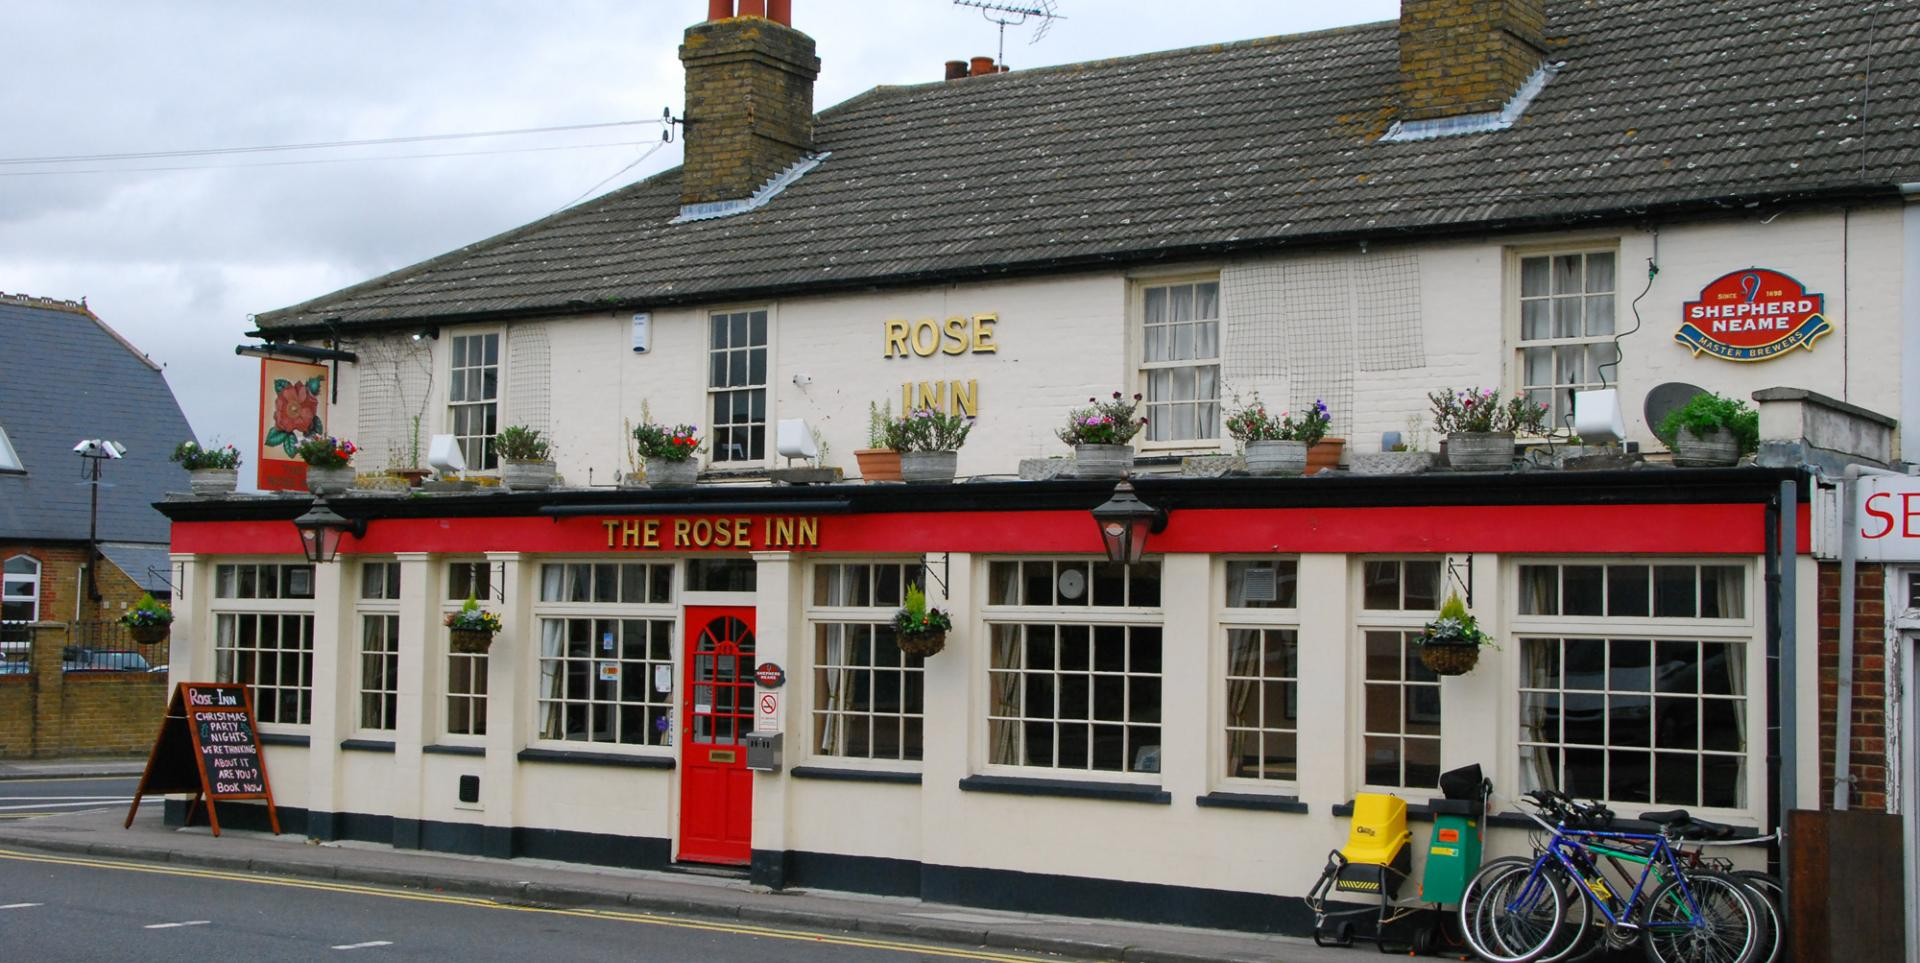 The Rose Inn Rainham